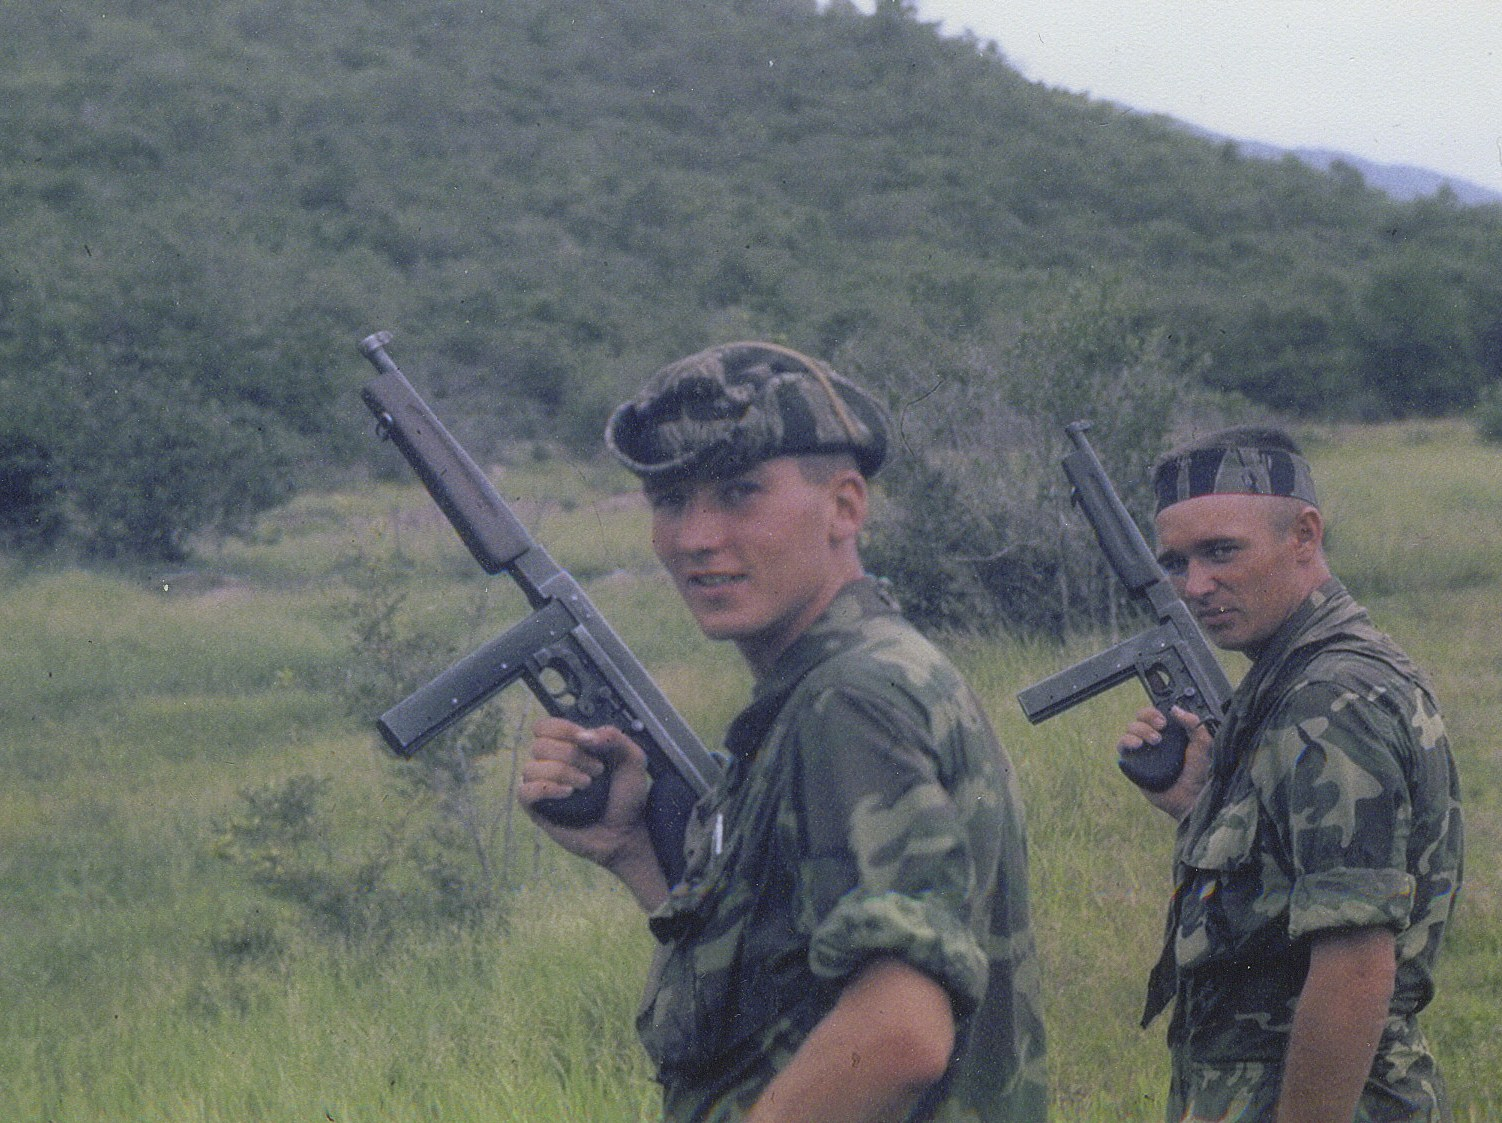 Thompson 45 cal sub machine gun firing at MACV Recondo School - 1967